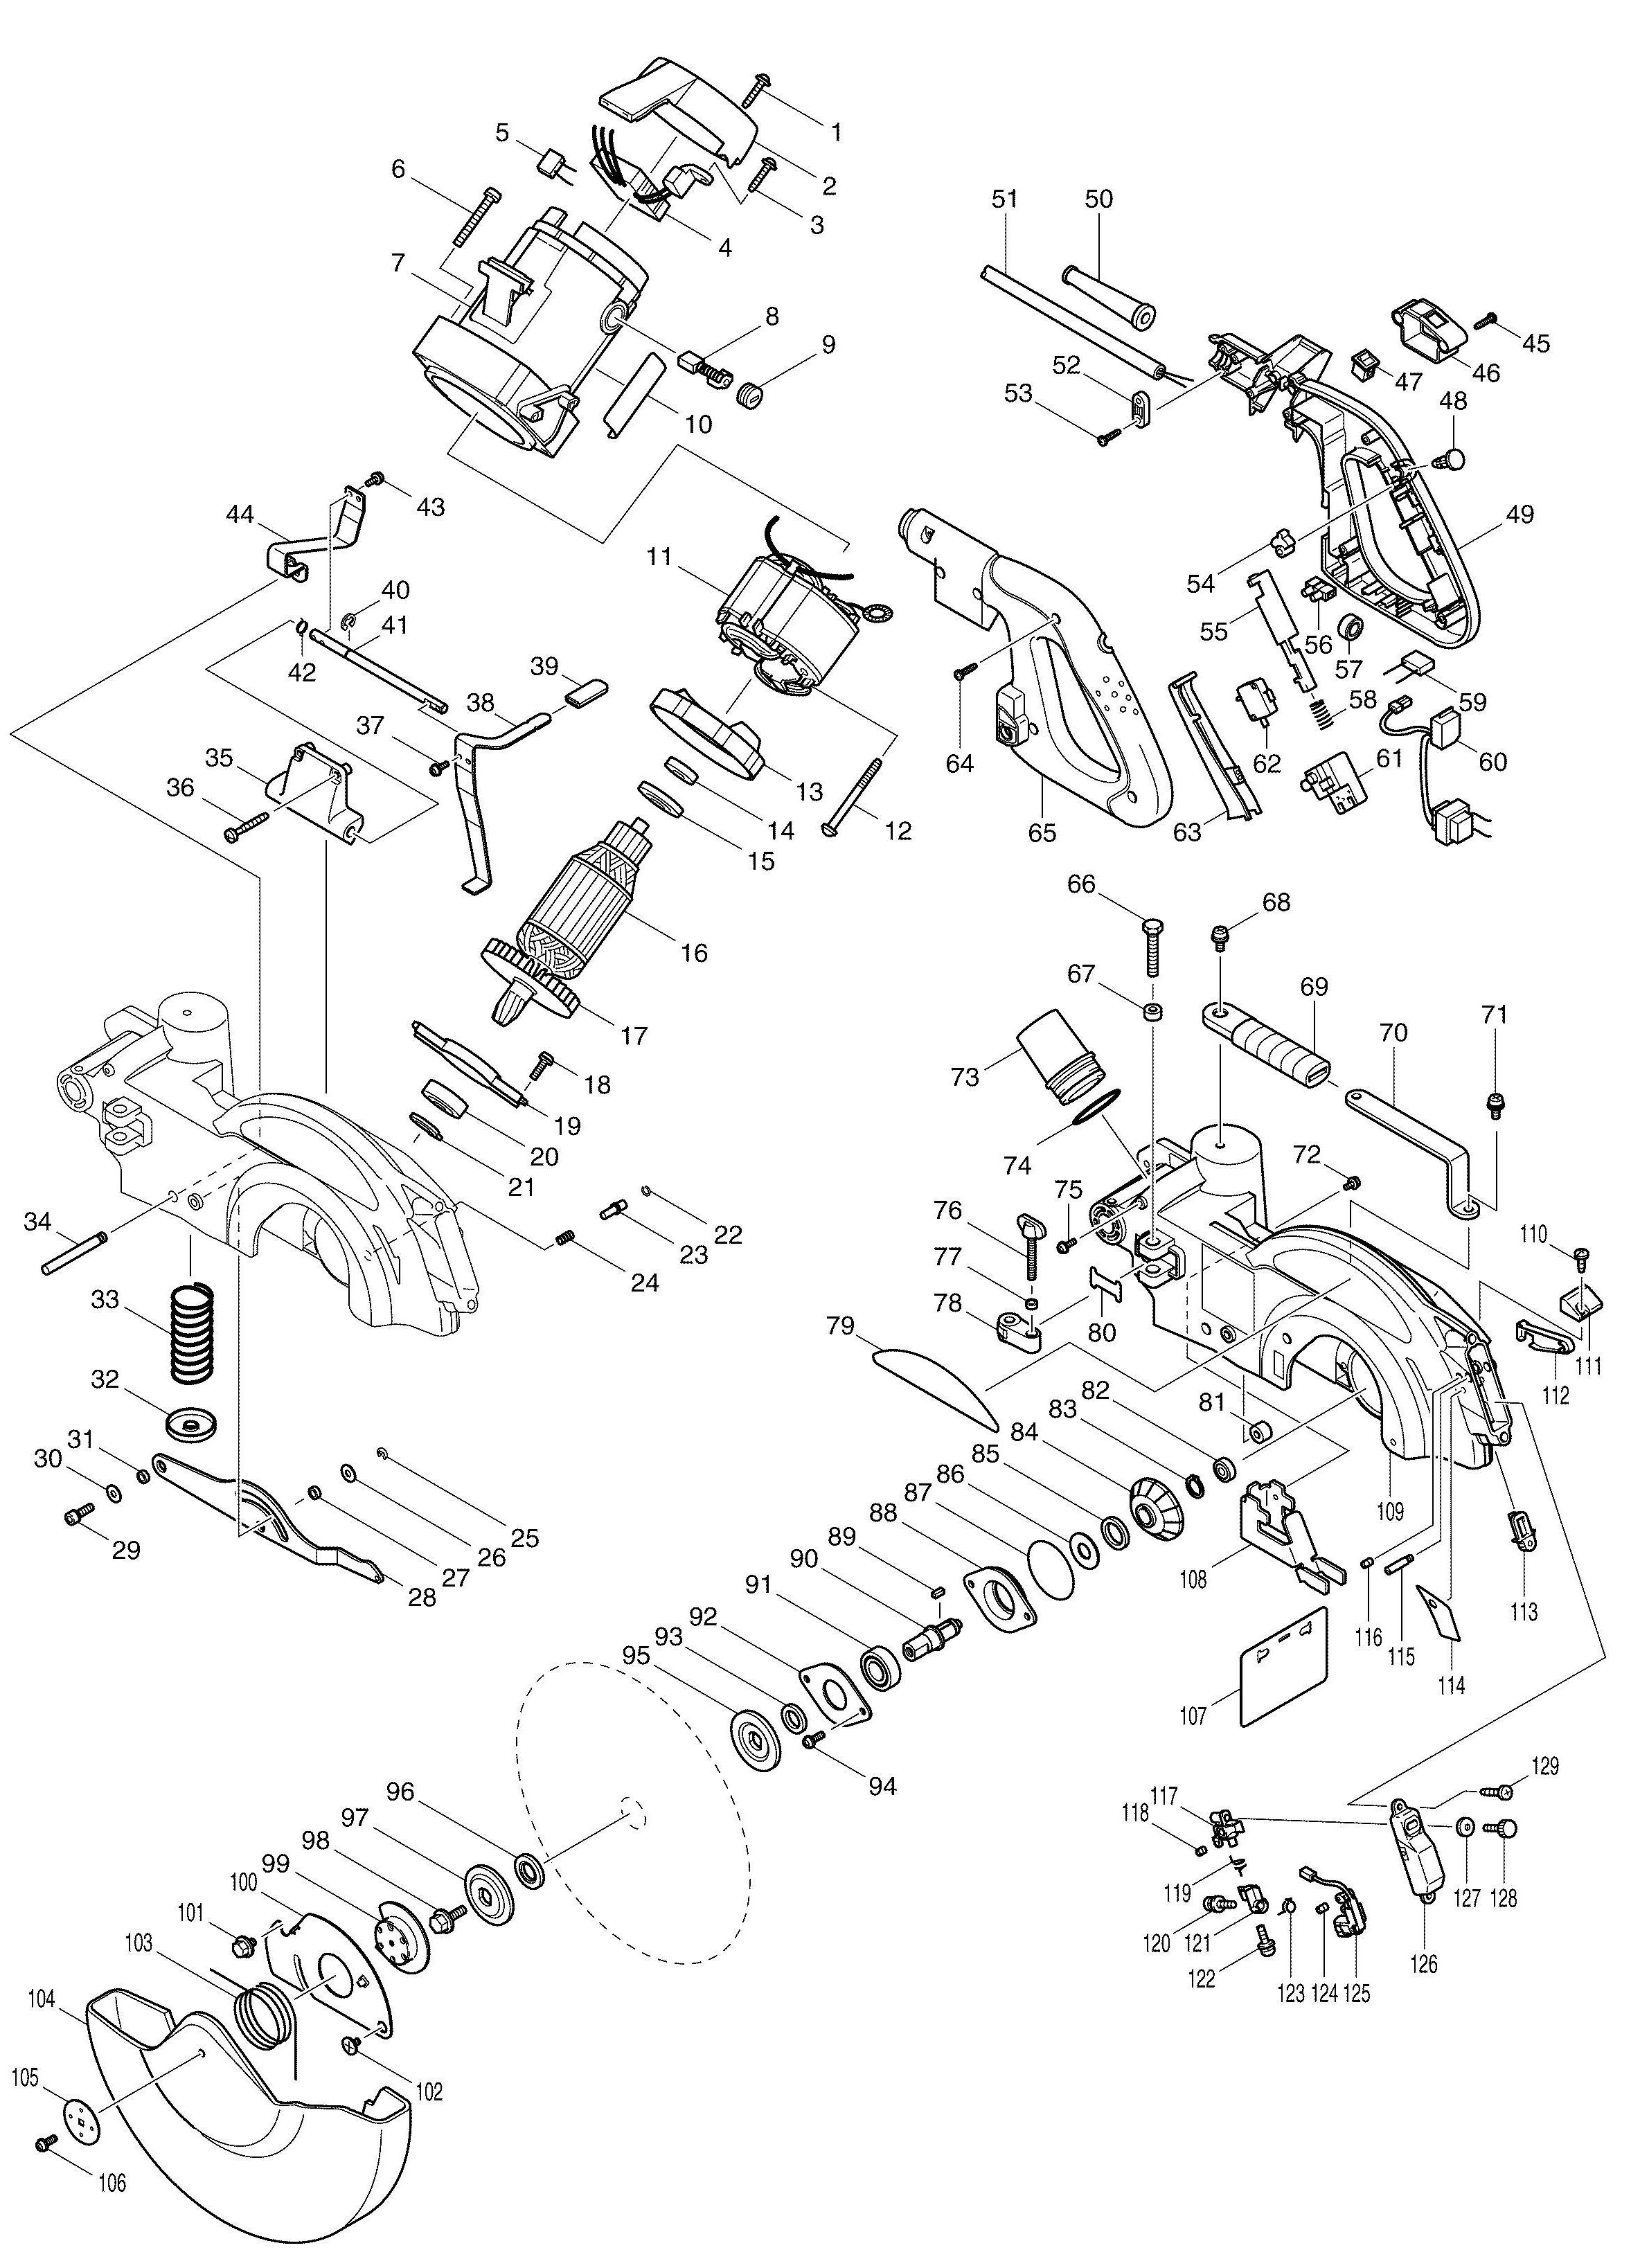 Makita miter saw switch wiring diagram diy wiring diagrams spares for makita ls1013l slide compound mitre saw 260mm with laser rh ptctools co uk makita miter saw parts table saw switch wiring diagram keyboard keysfo Gallery